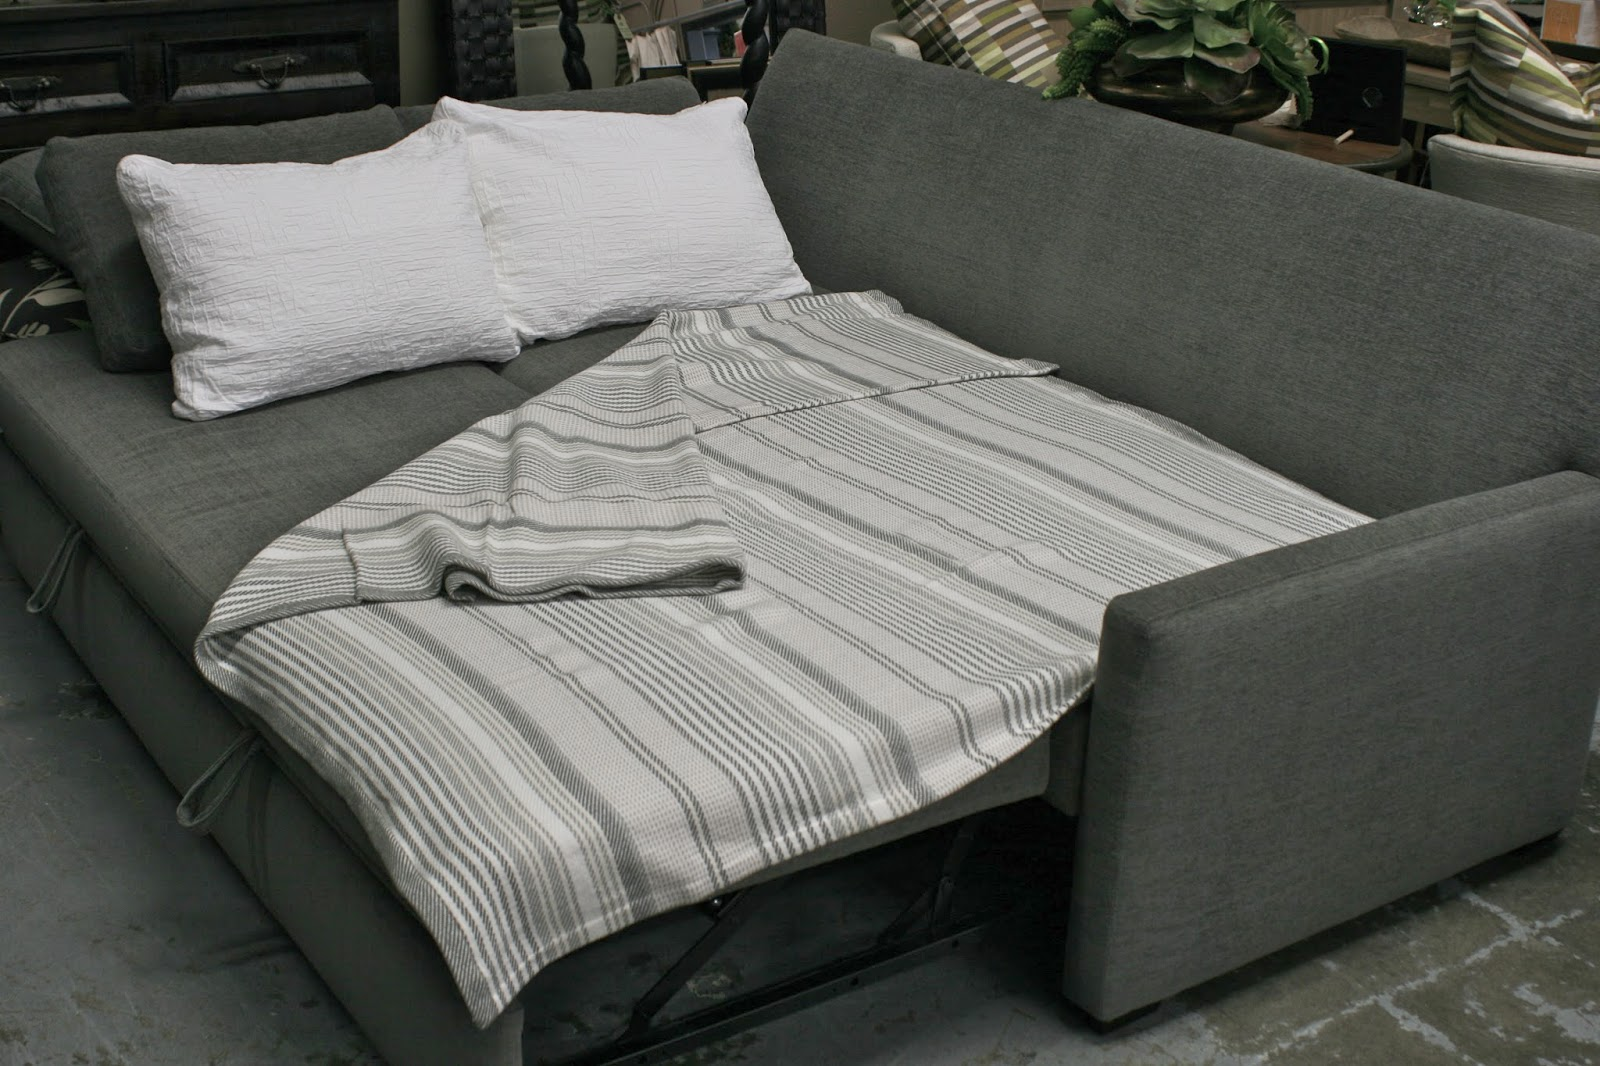 Choose Grey Sofa Bed Mattress and Duvet for Traditional Living Room with Concrete Flooring